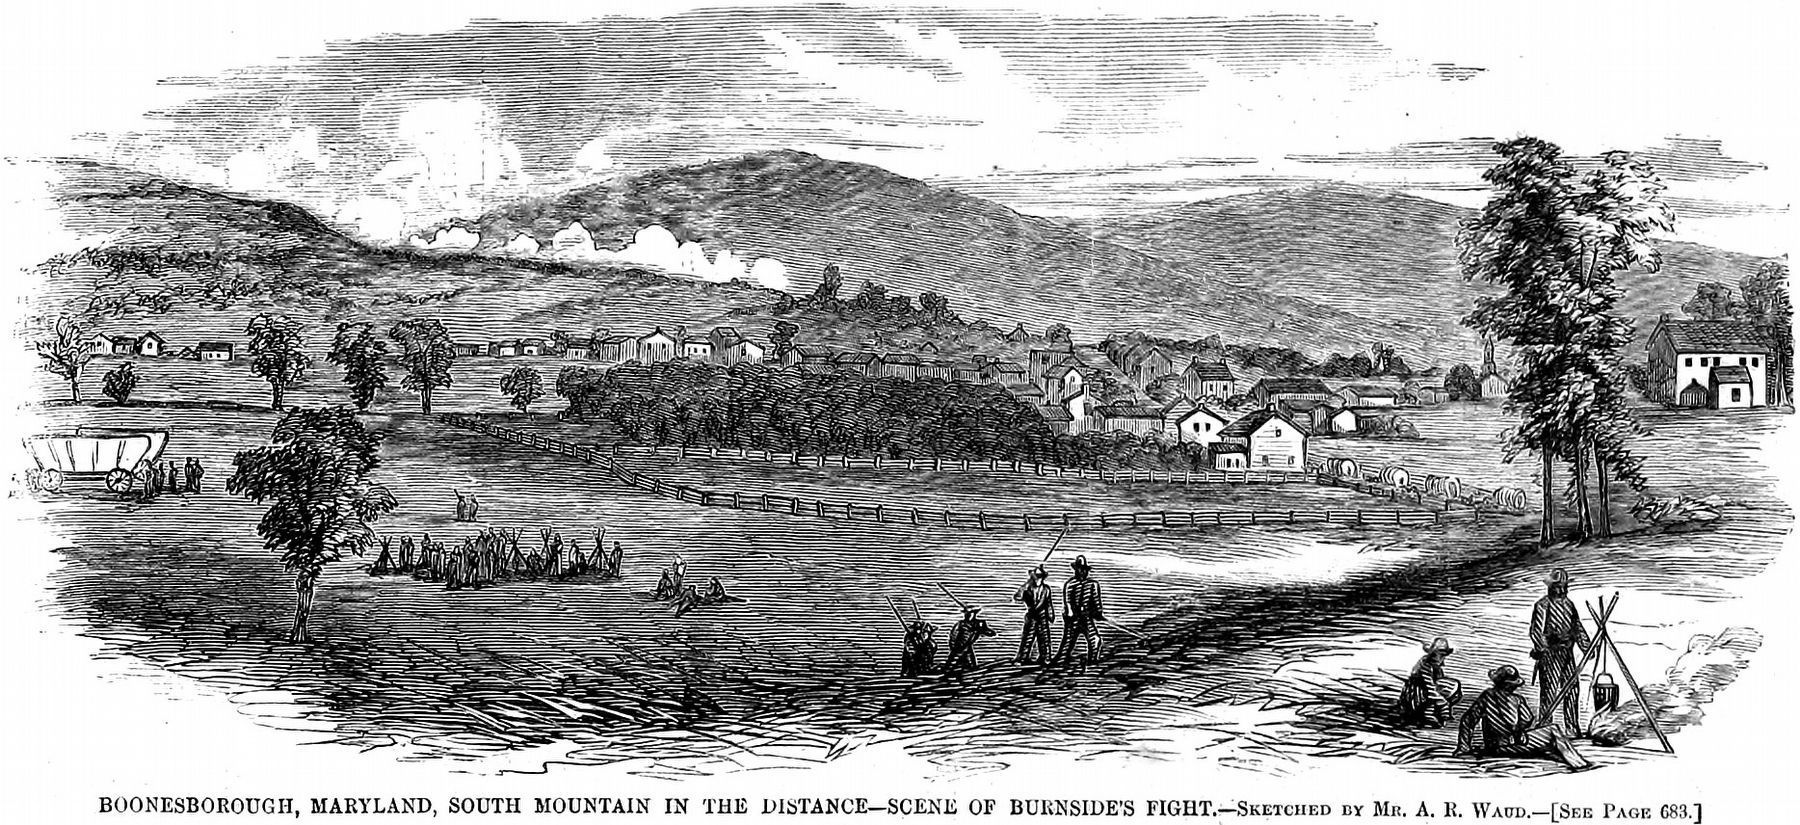 Boonesborough, Maryland,<br>South Mountain in the Distance <br> Scene of Burnside&#39;s Fight image. Click for full size.